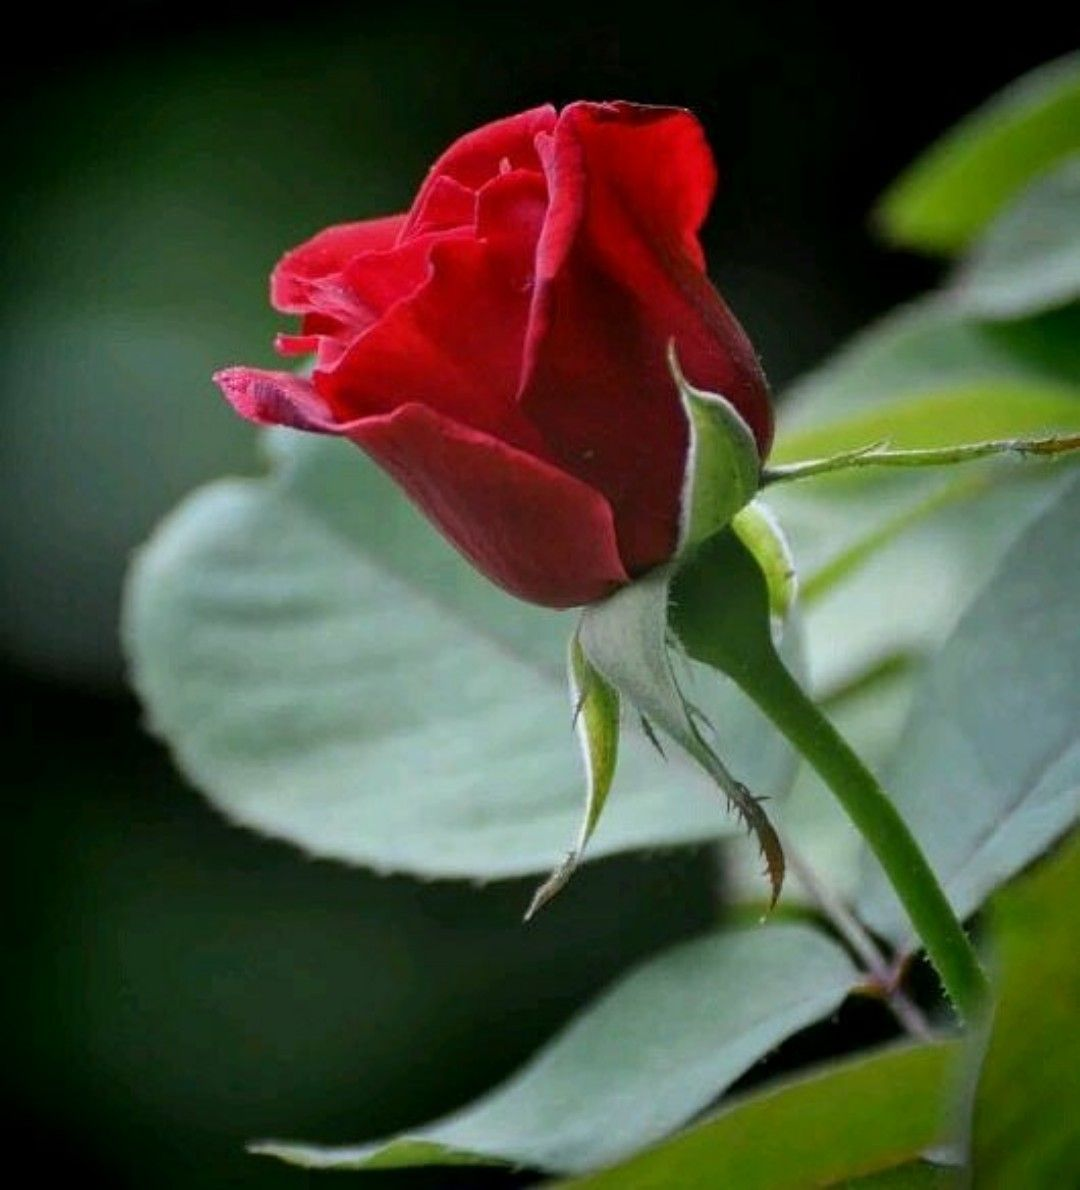 Pin by Mousumi Ghosh on Flowers | Pinterest | Single red rose, Red ...